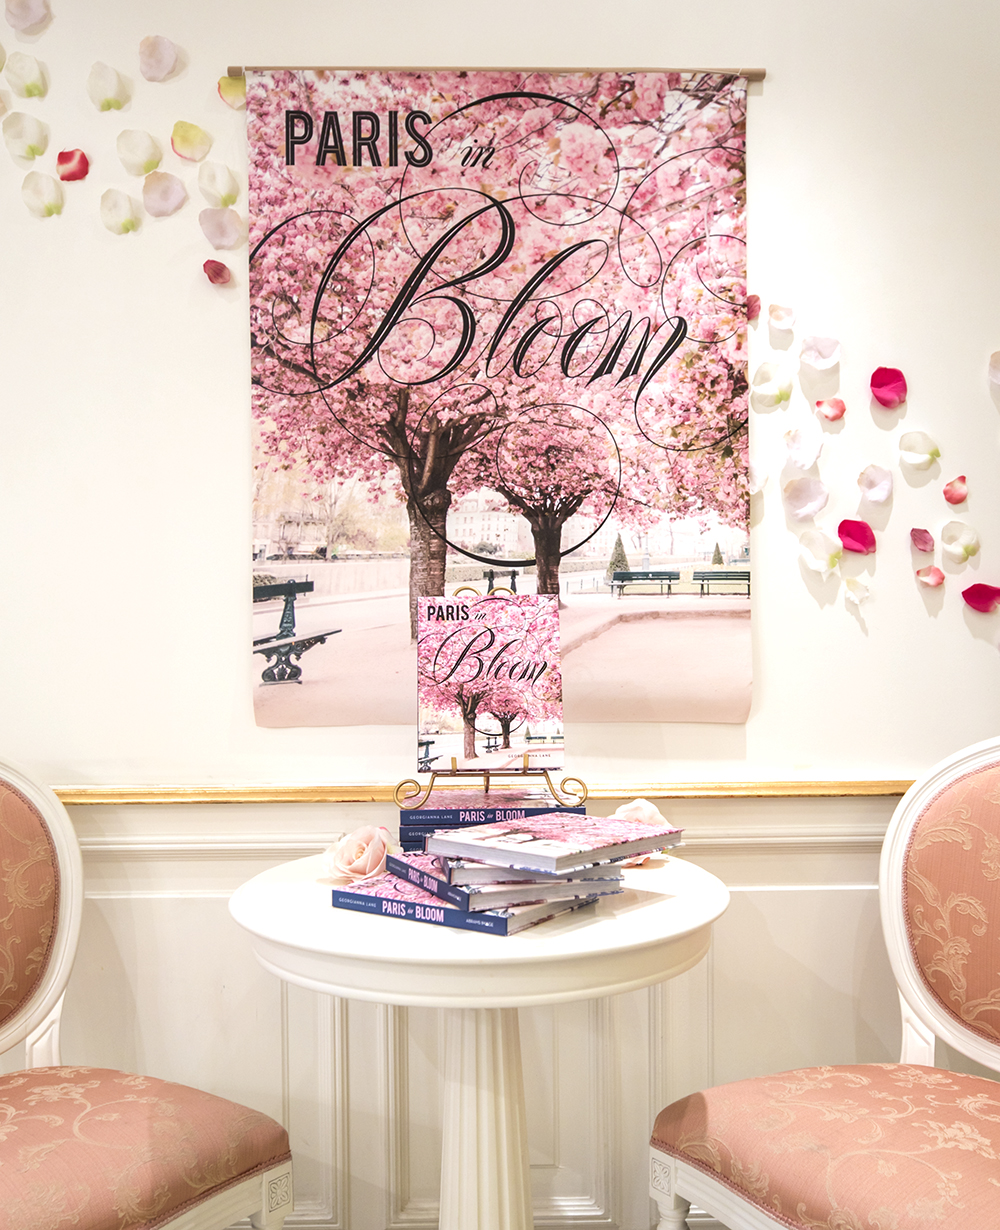 Paris in Bloom Book Event, Nina's Paris